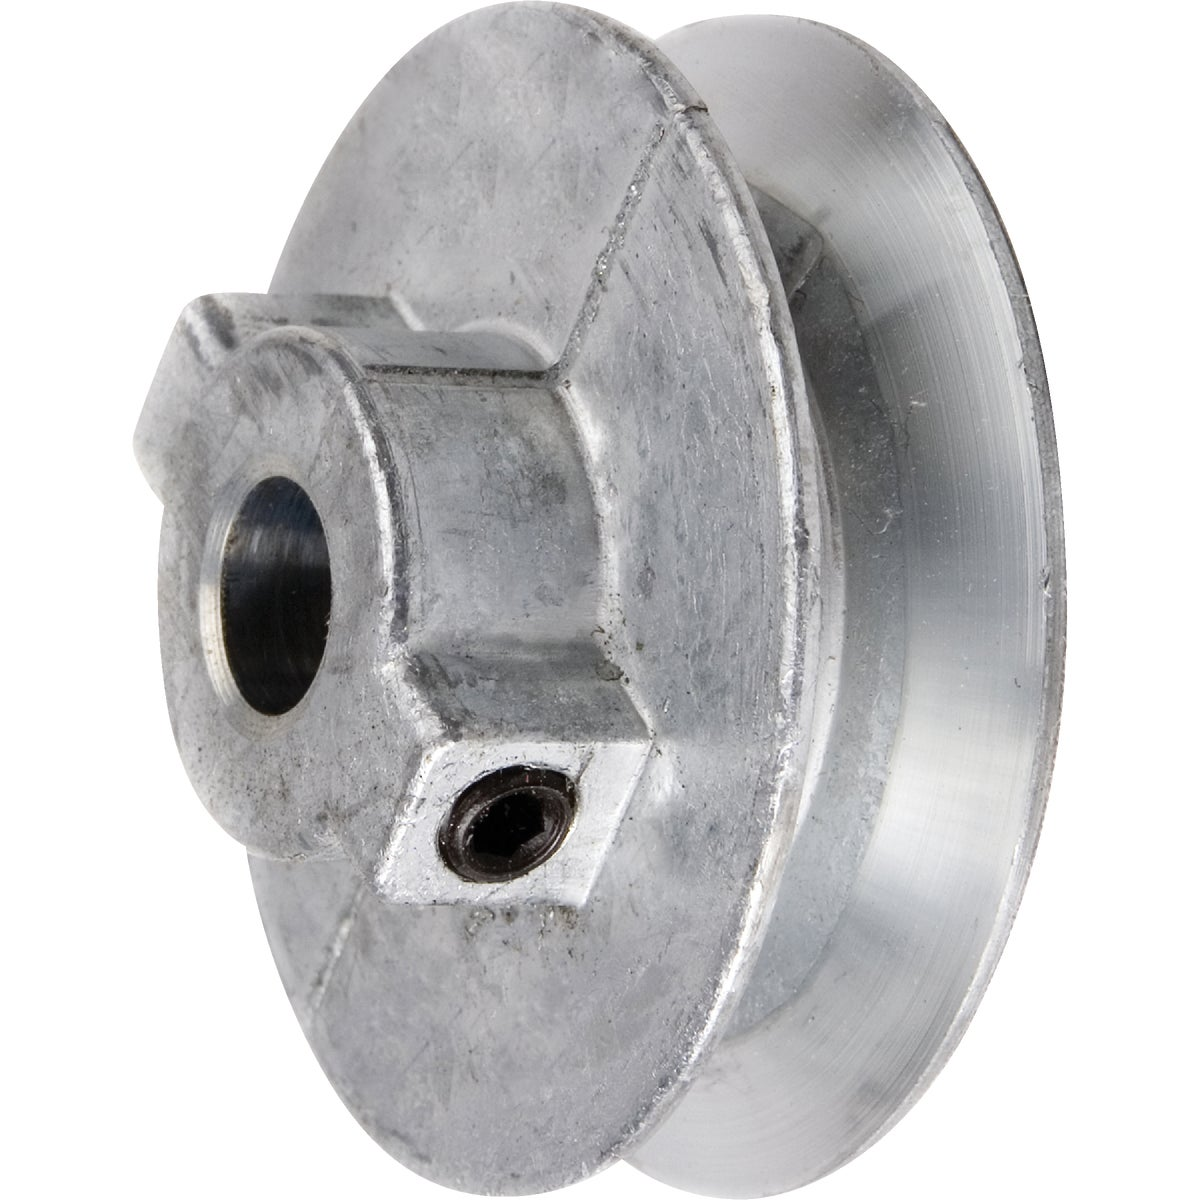 3X3/4 PULLEY